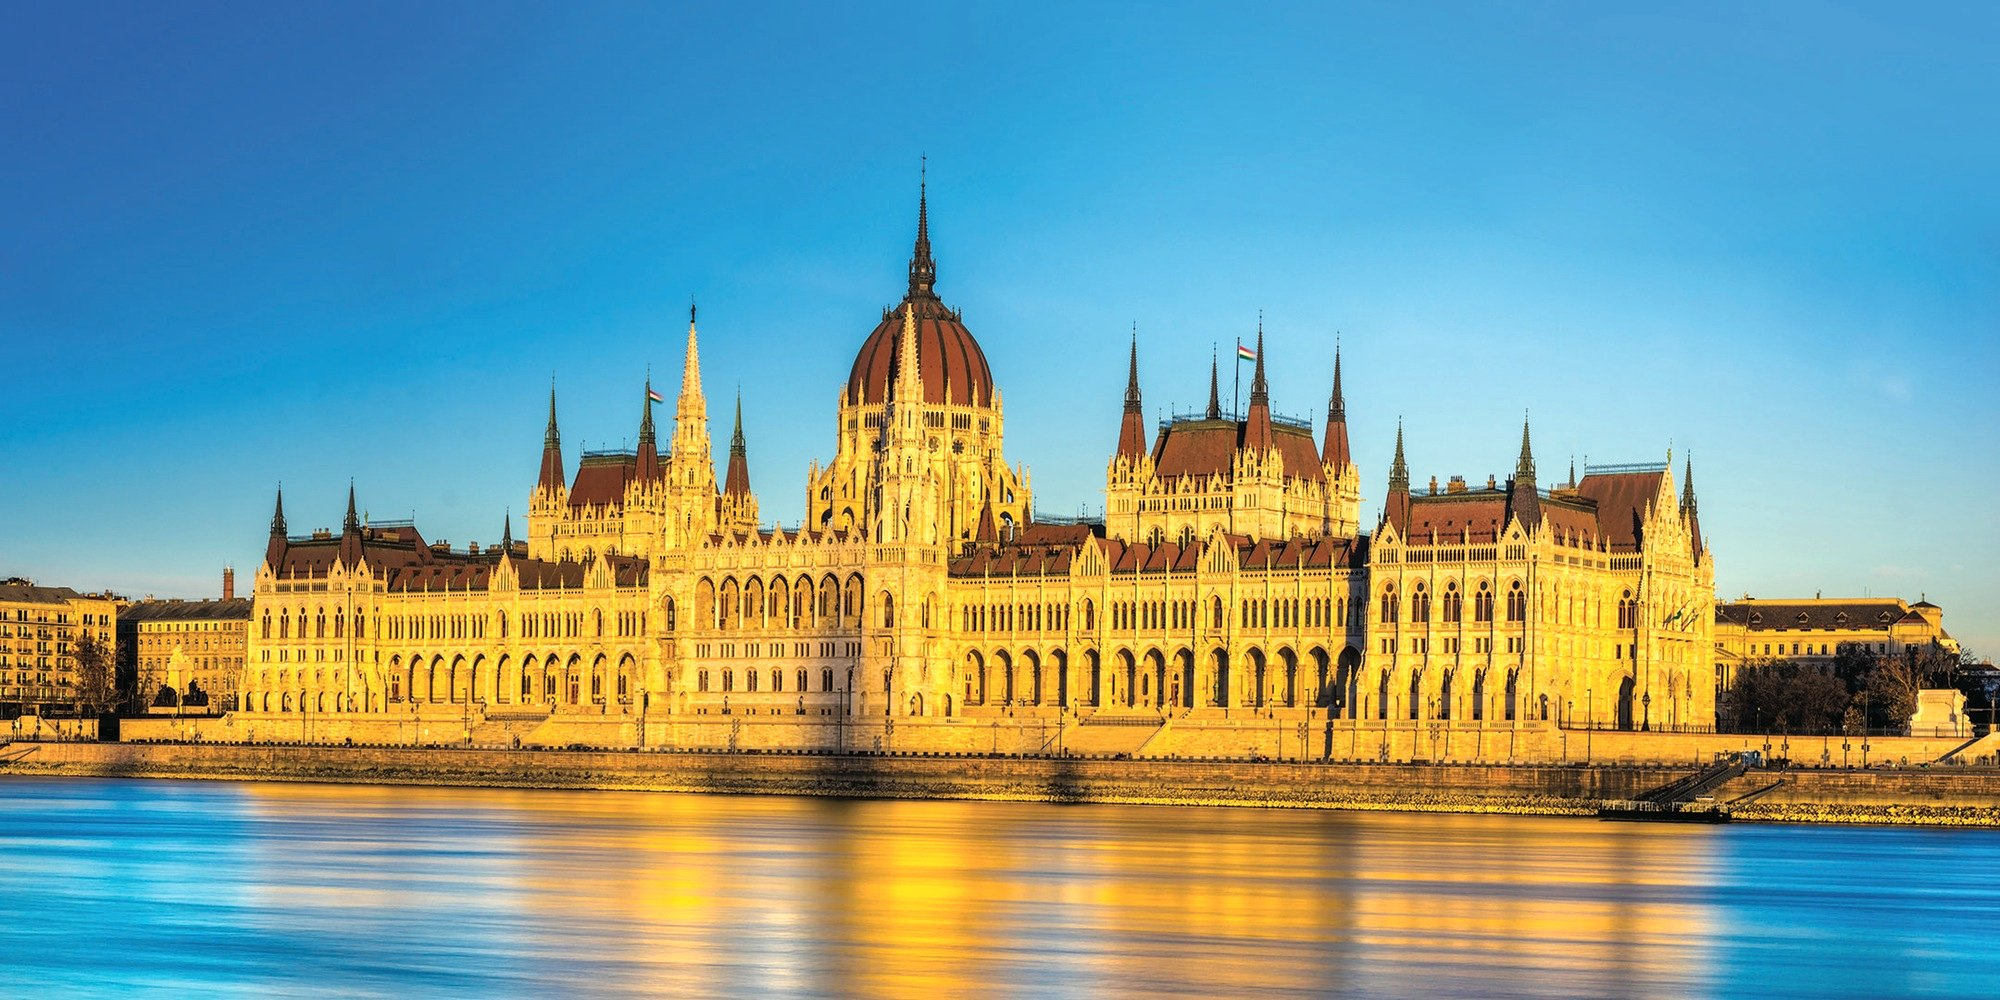 Budapest, Hungary Google image from https://www.eventbrite.ca